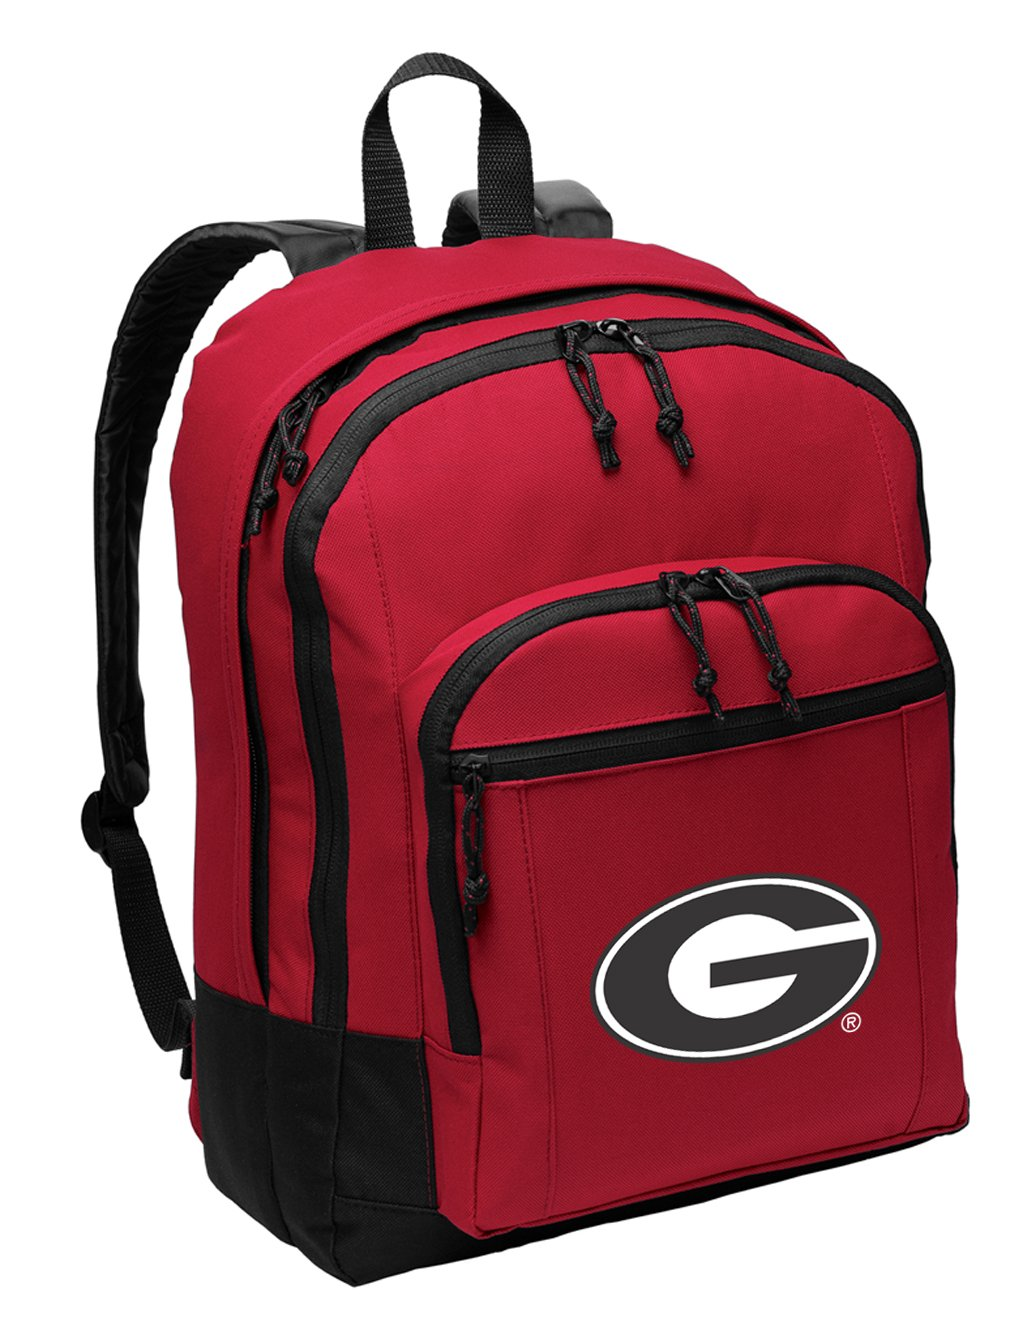 Broad Bay University of Georgia Backpack MEDIUM CLASSIC Style With Laptop Sleeve